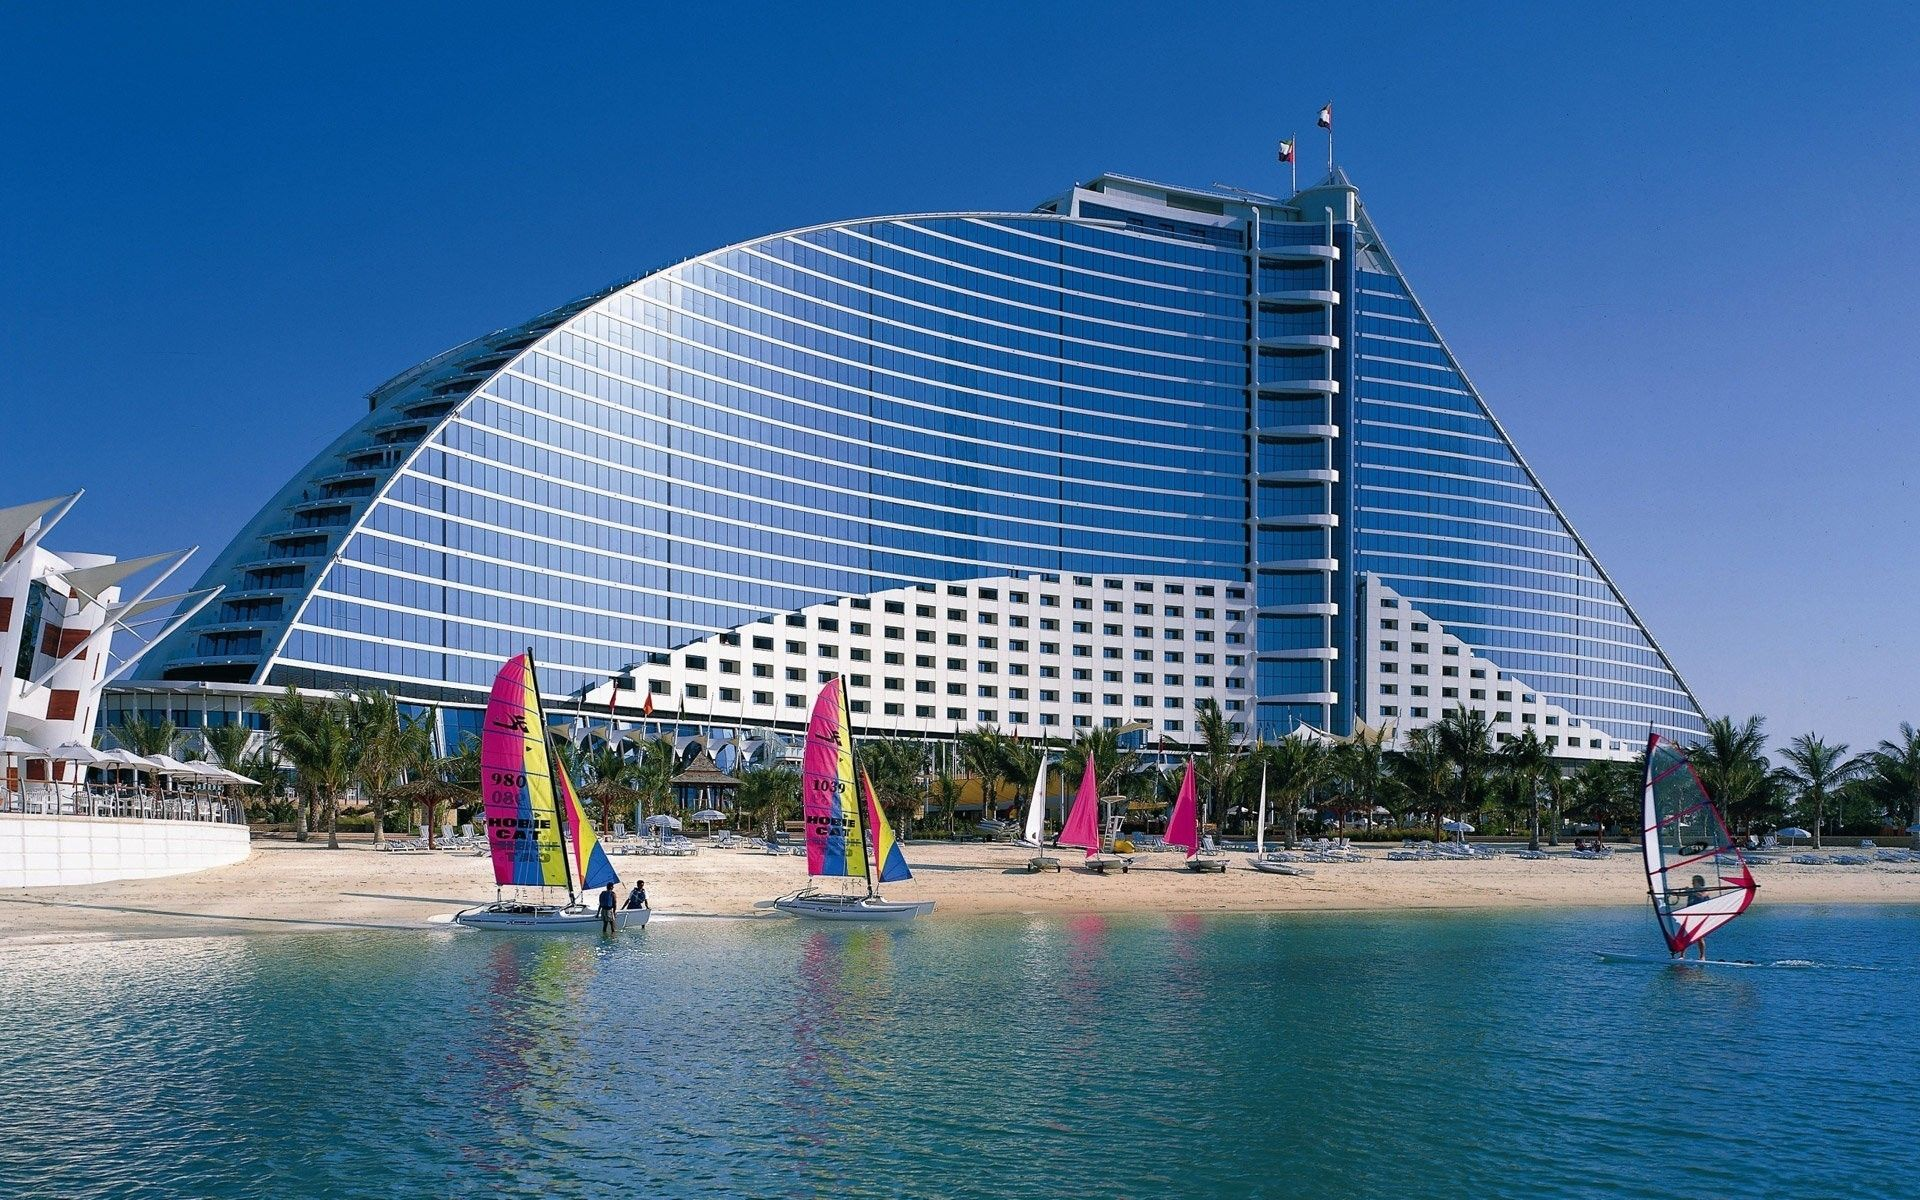 Jumeirah Beach Hotel Dubai This Luxury Was Officially Recognized By The Professional Ociation Of Diving Instructors Padi And Received Highest